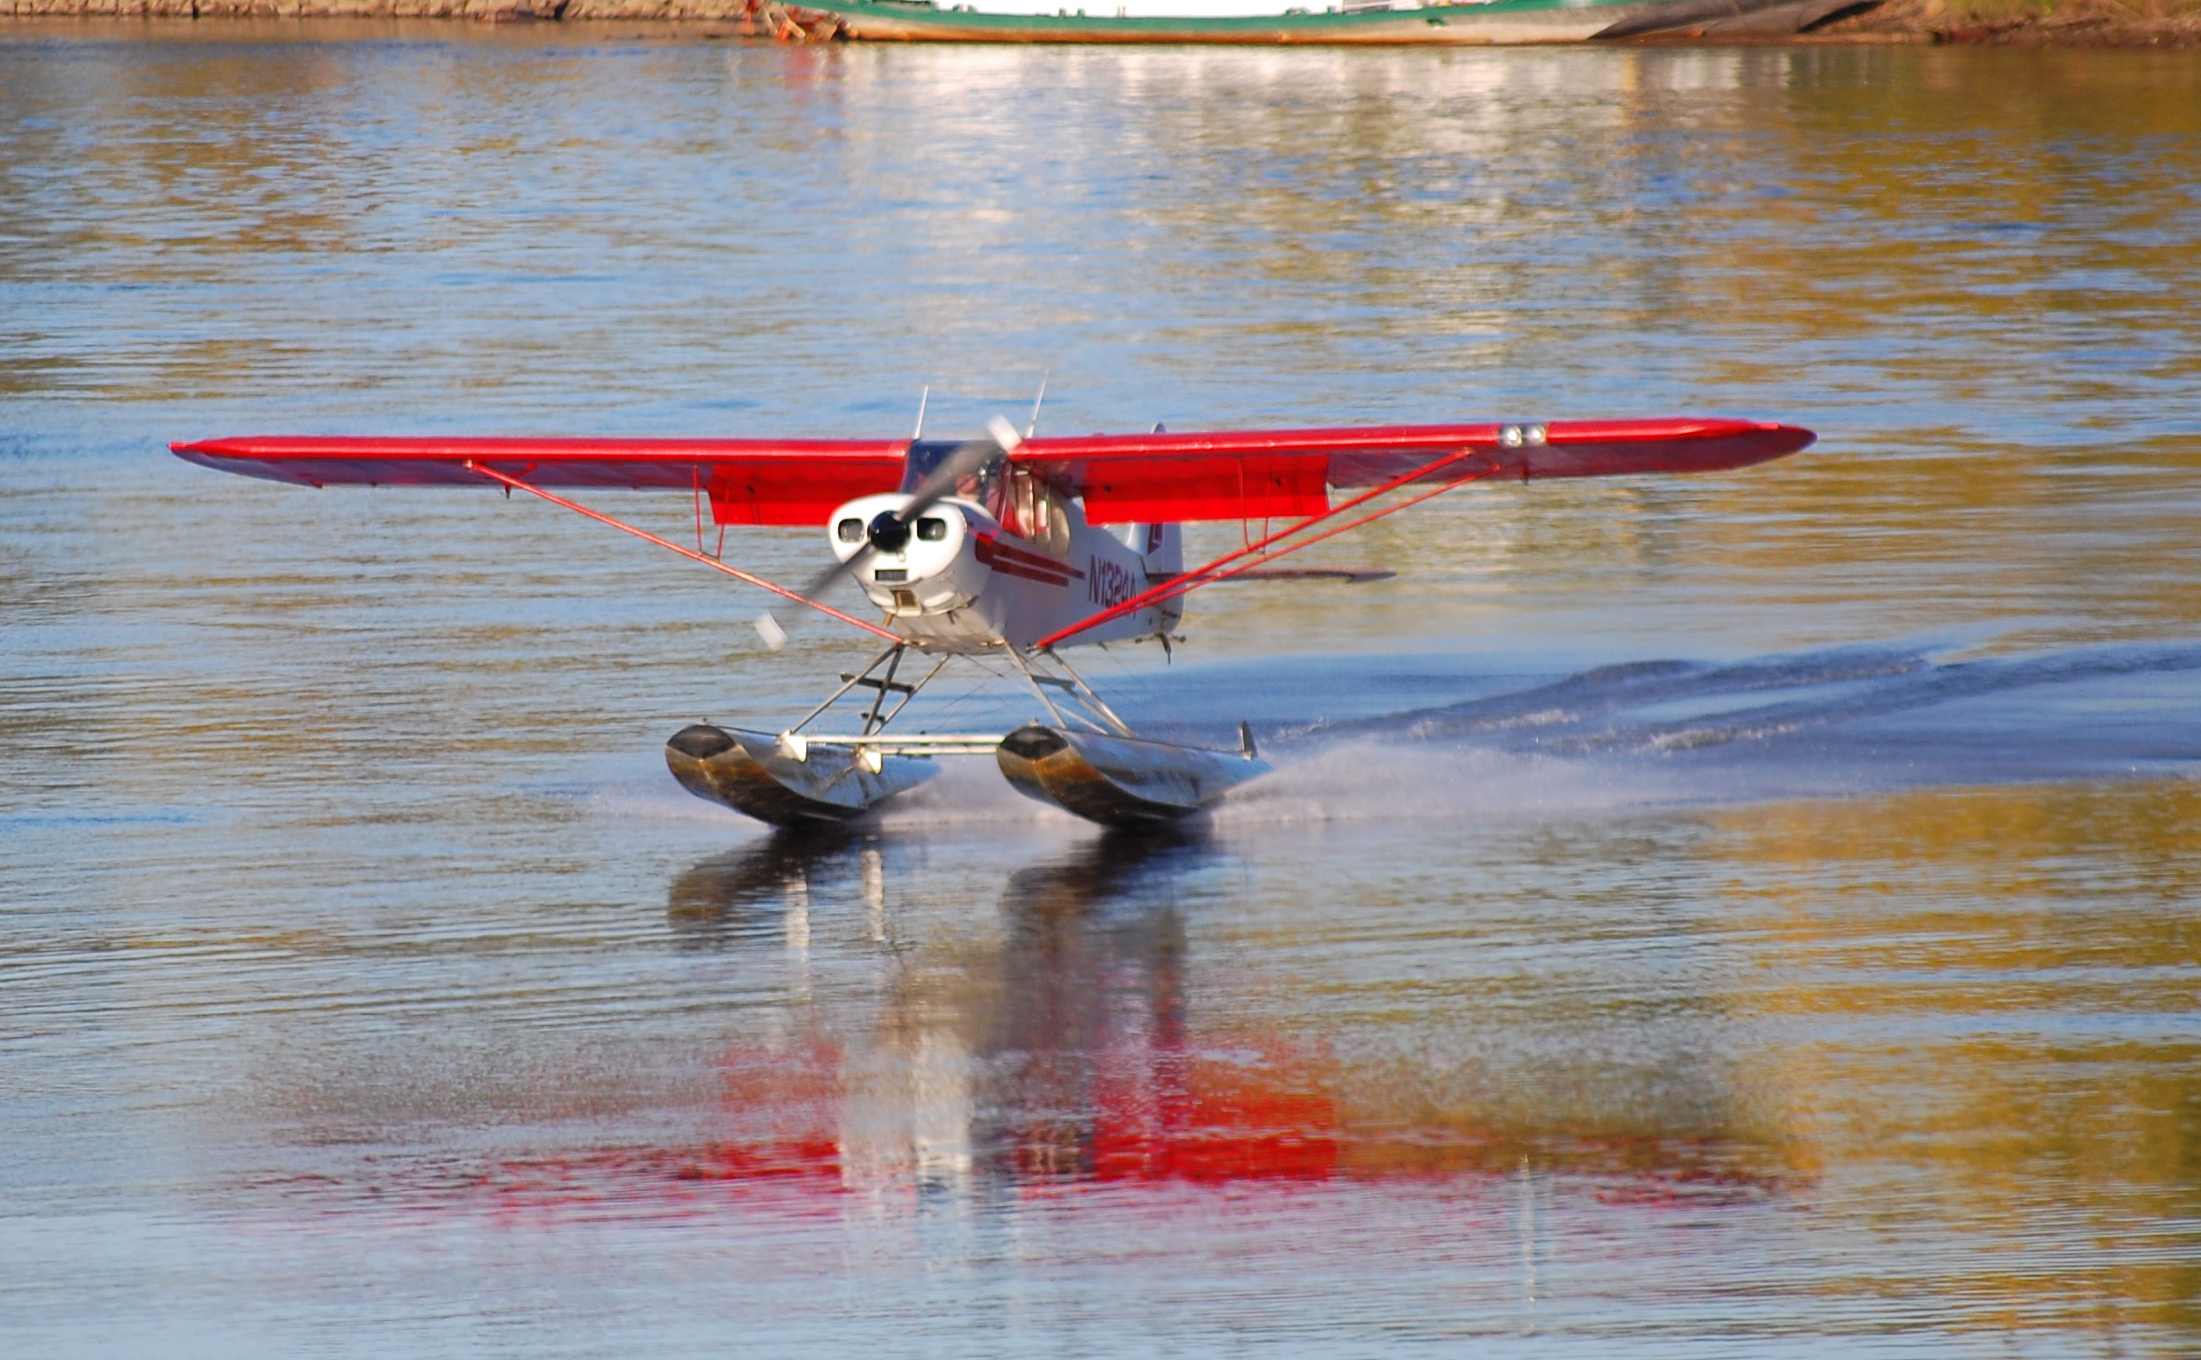 A Piper Cub on floats taking off from the river.